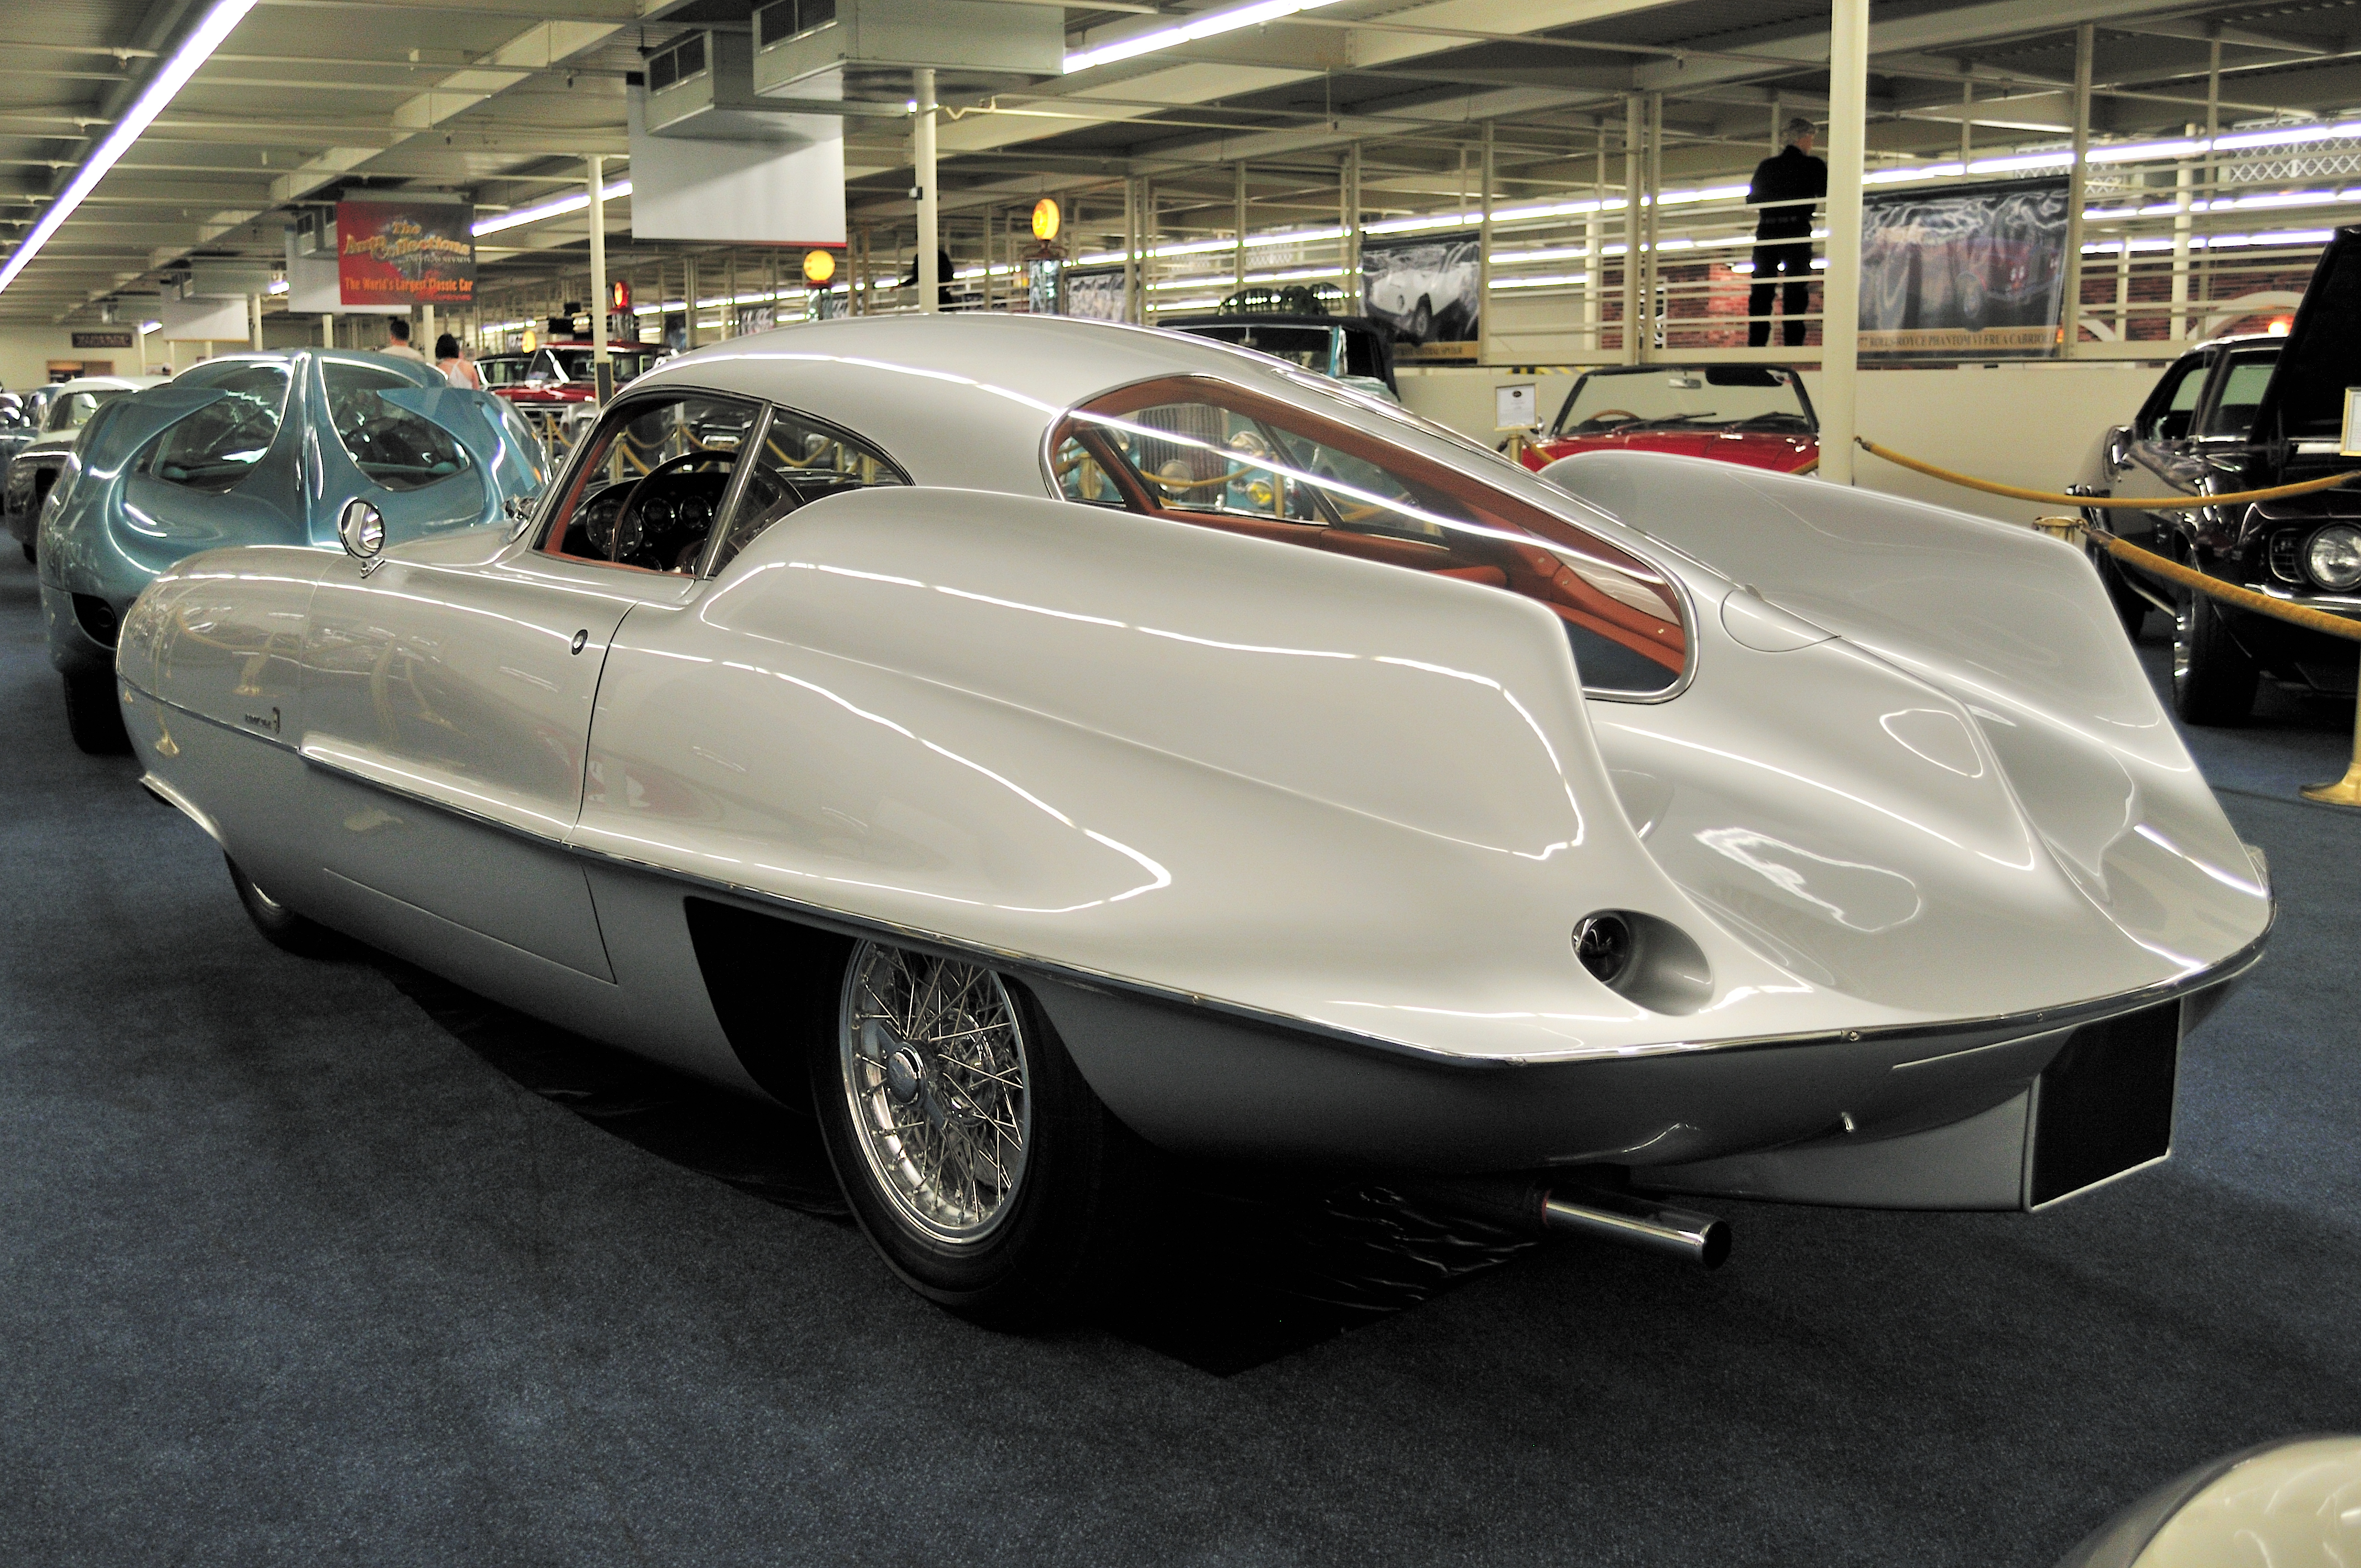 File:1955 Alfa Romeo BAT 9.jpg - Wikimedia Commons